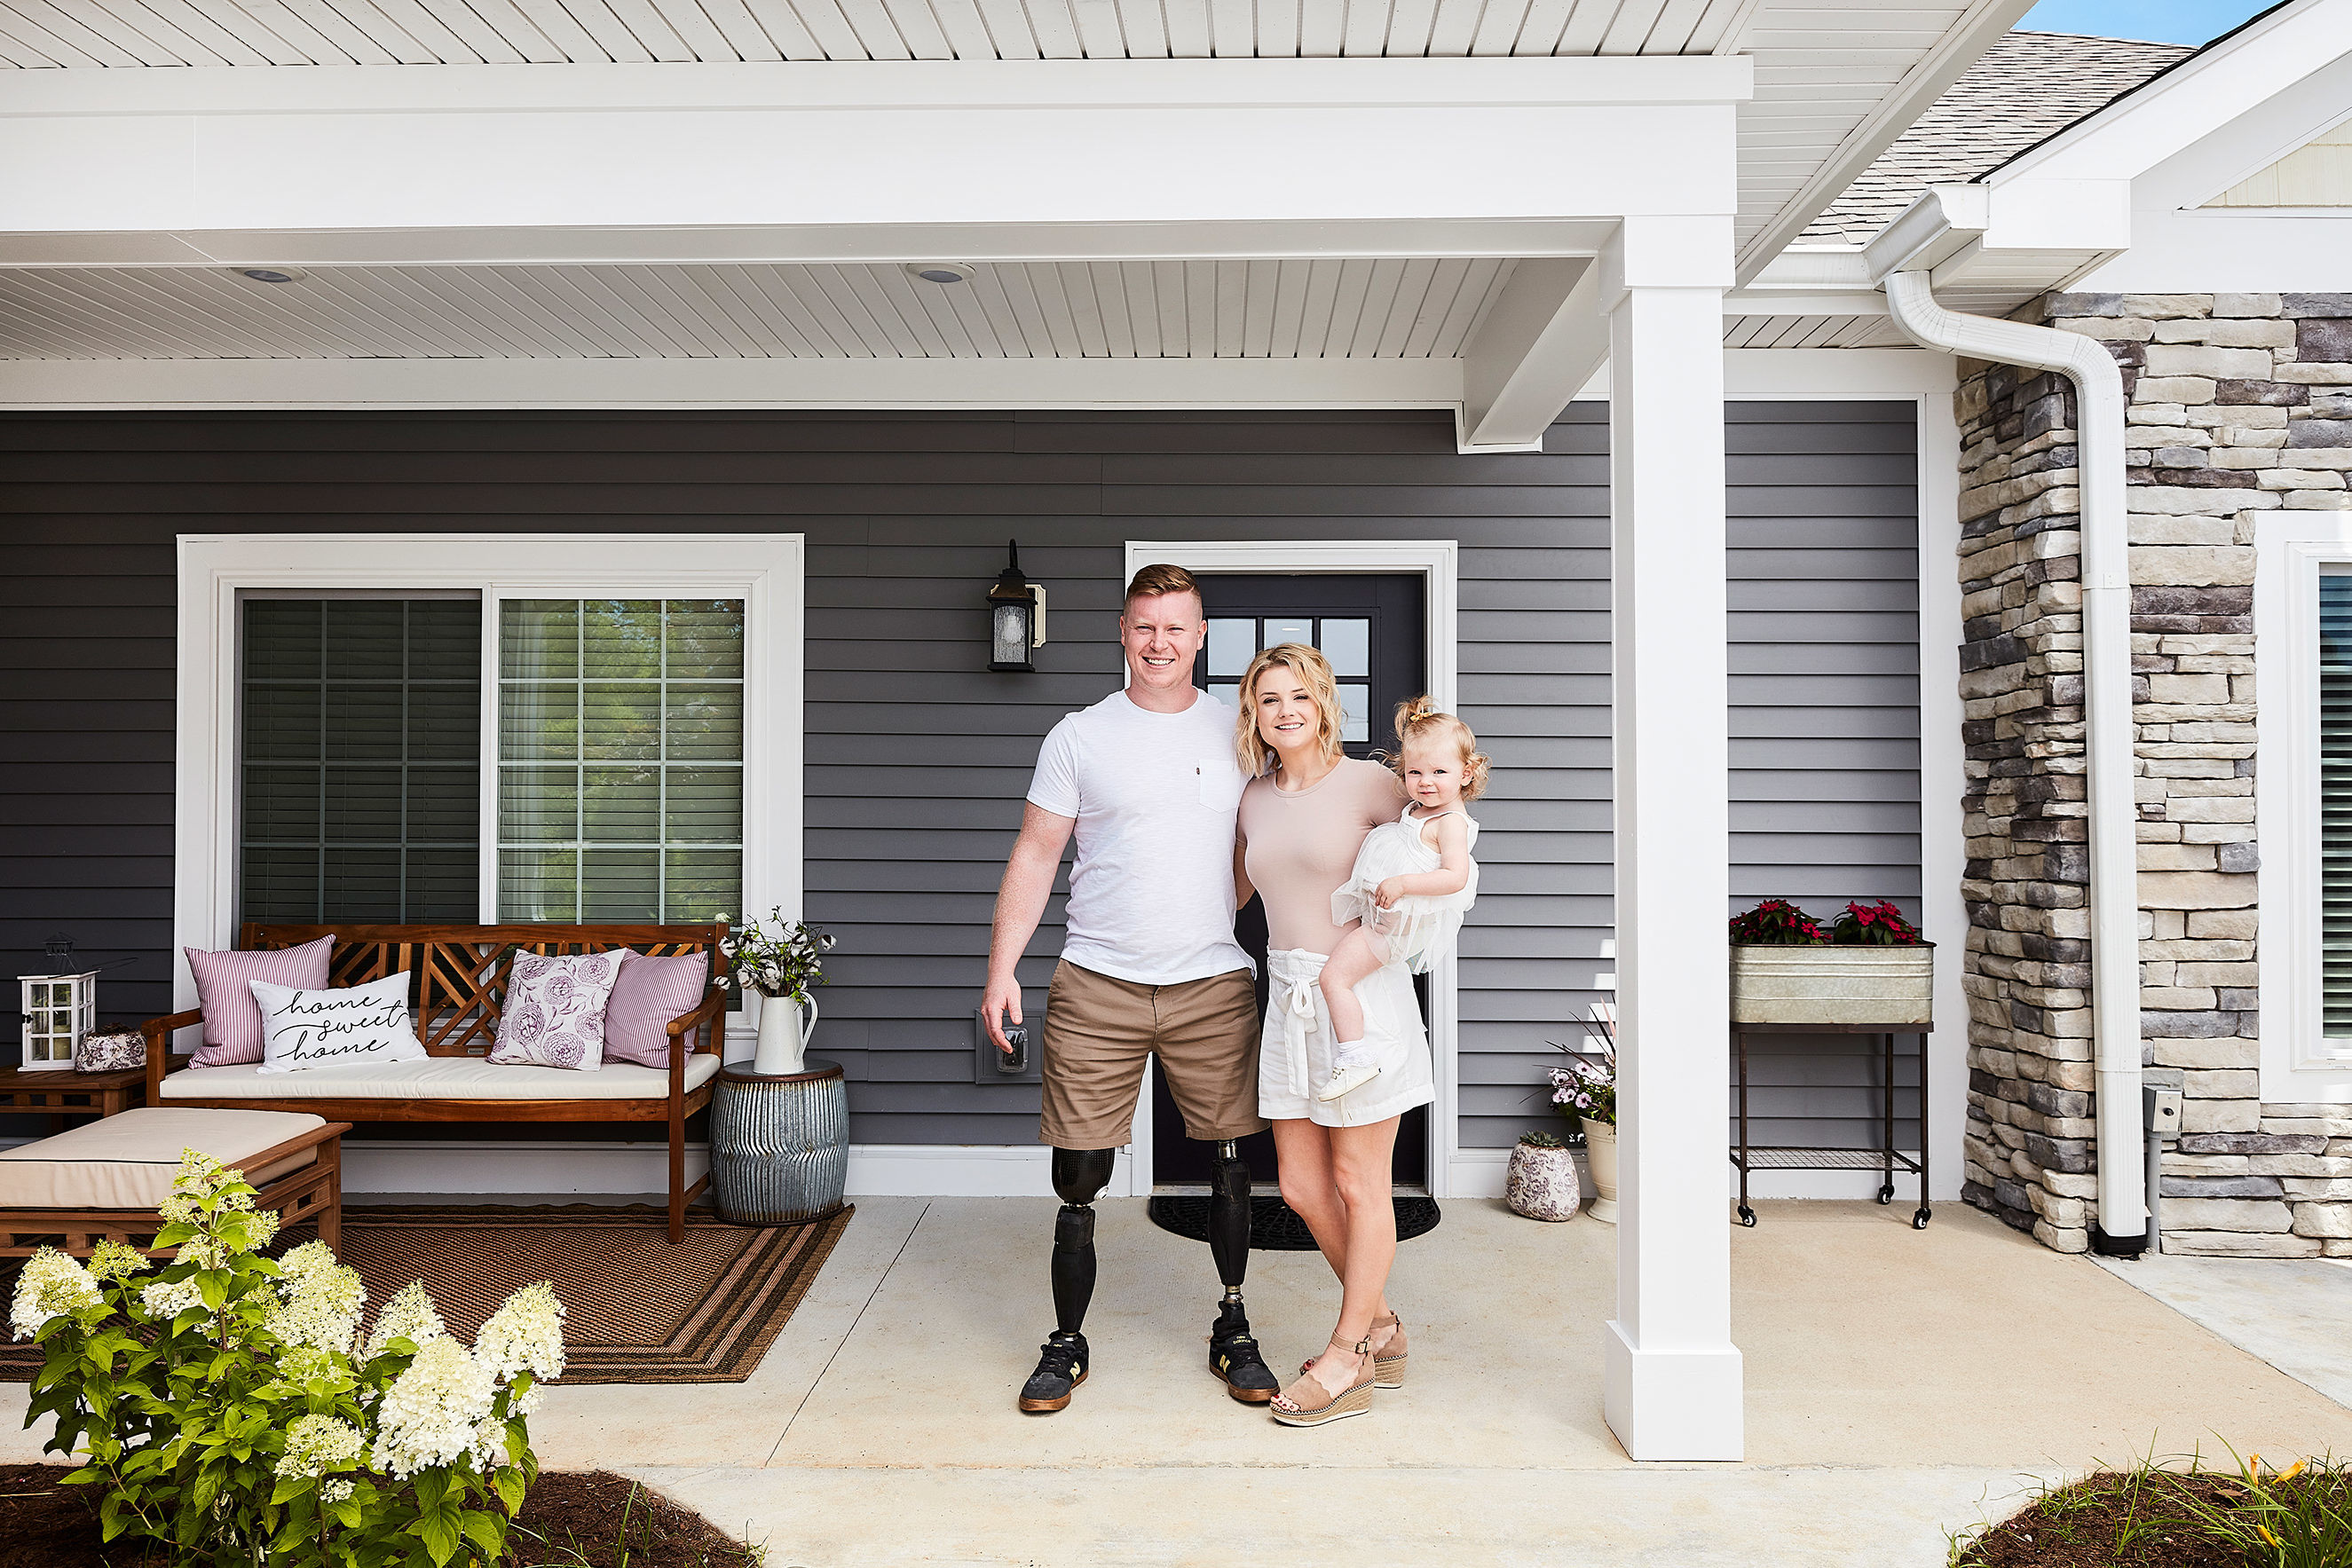 Inside the Specially Adapted Home Wayfair Furnished for a Veteran with a Disability and His Family